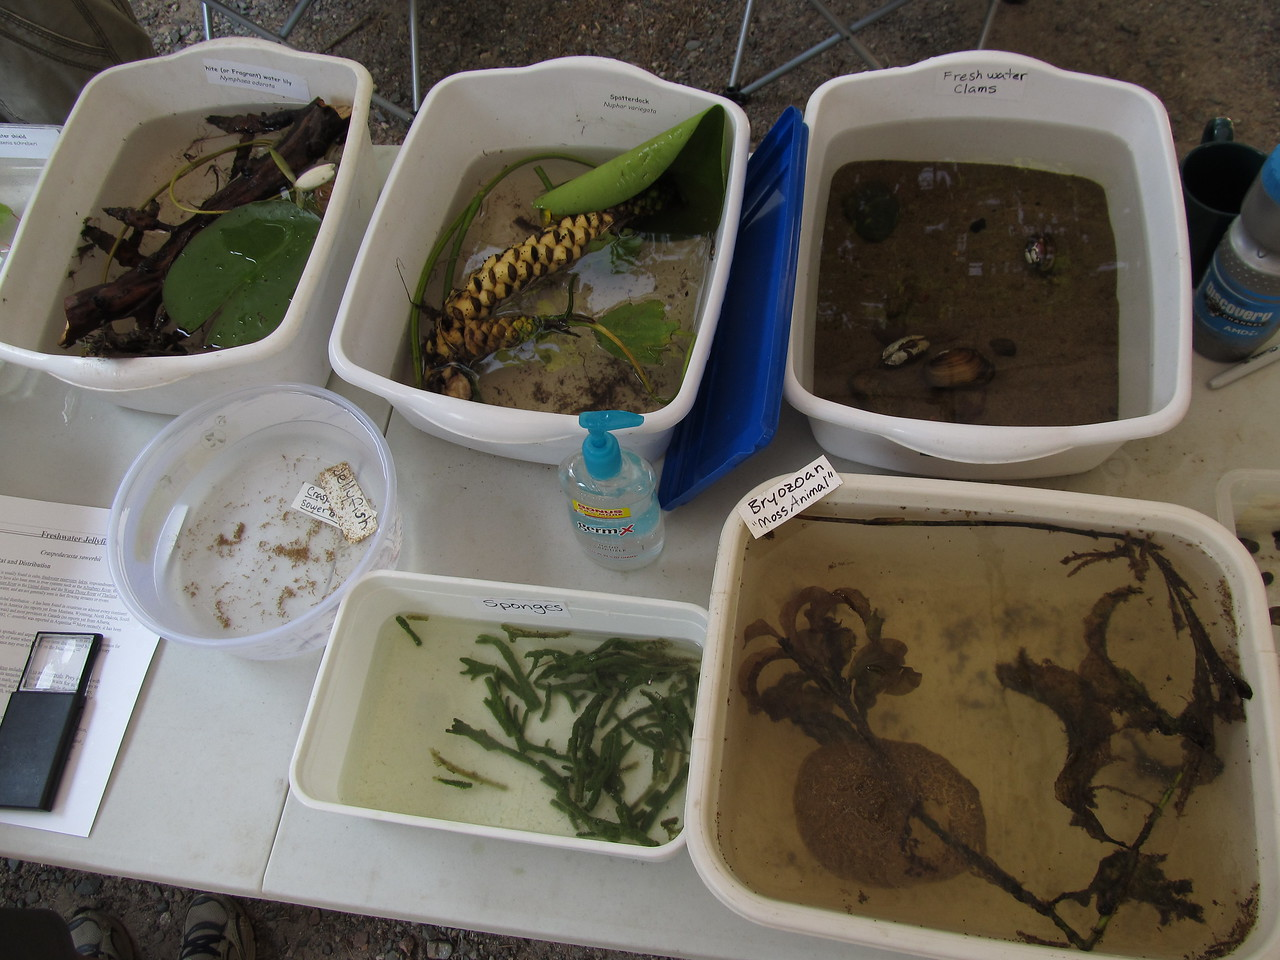 Freshwater jellyfish, sponges, clams and other curious biota were featured at this year's open house.